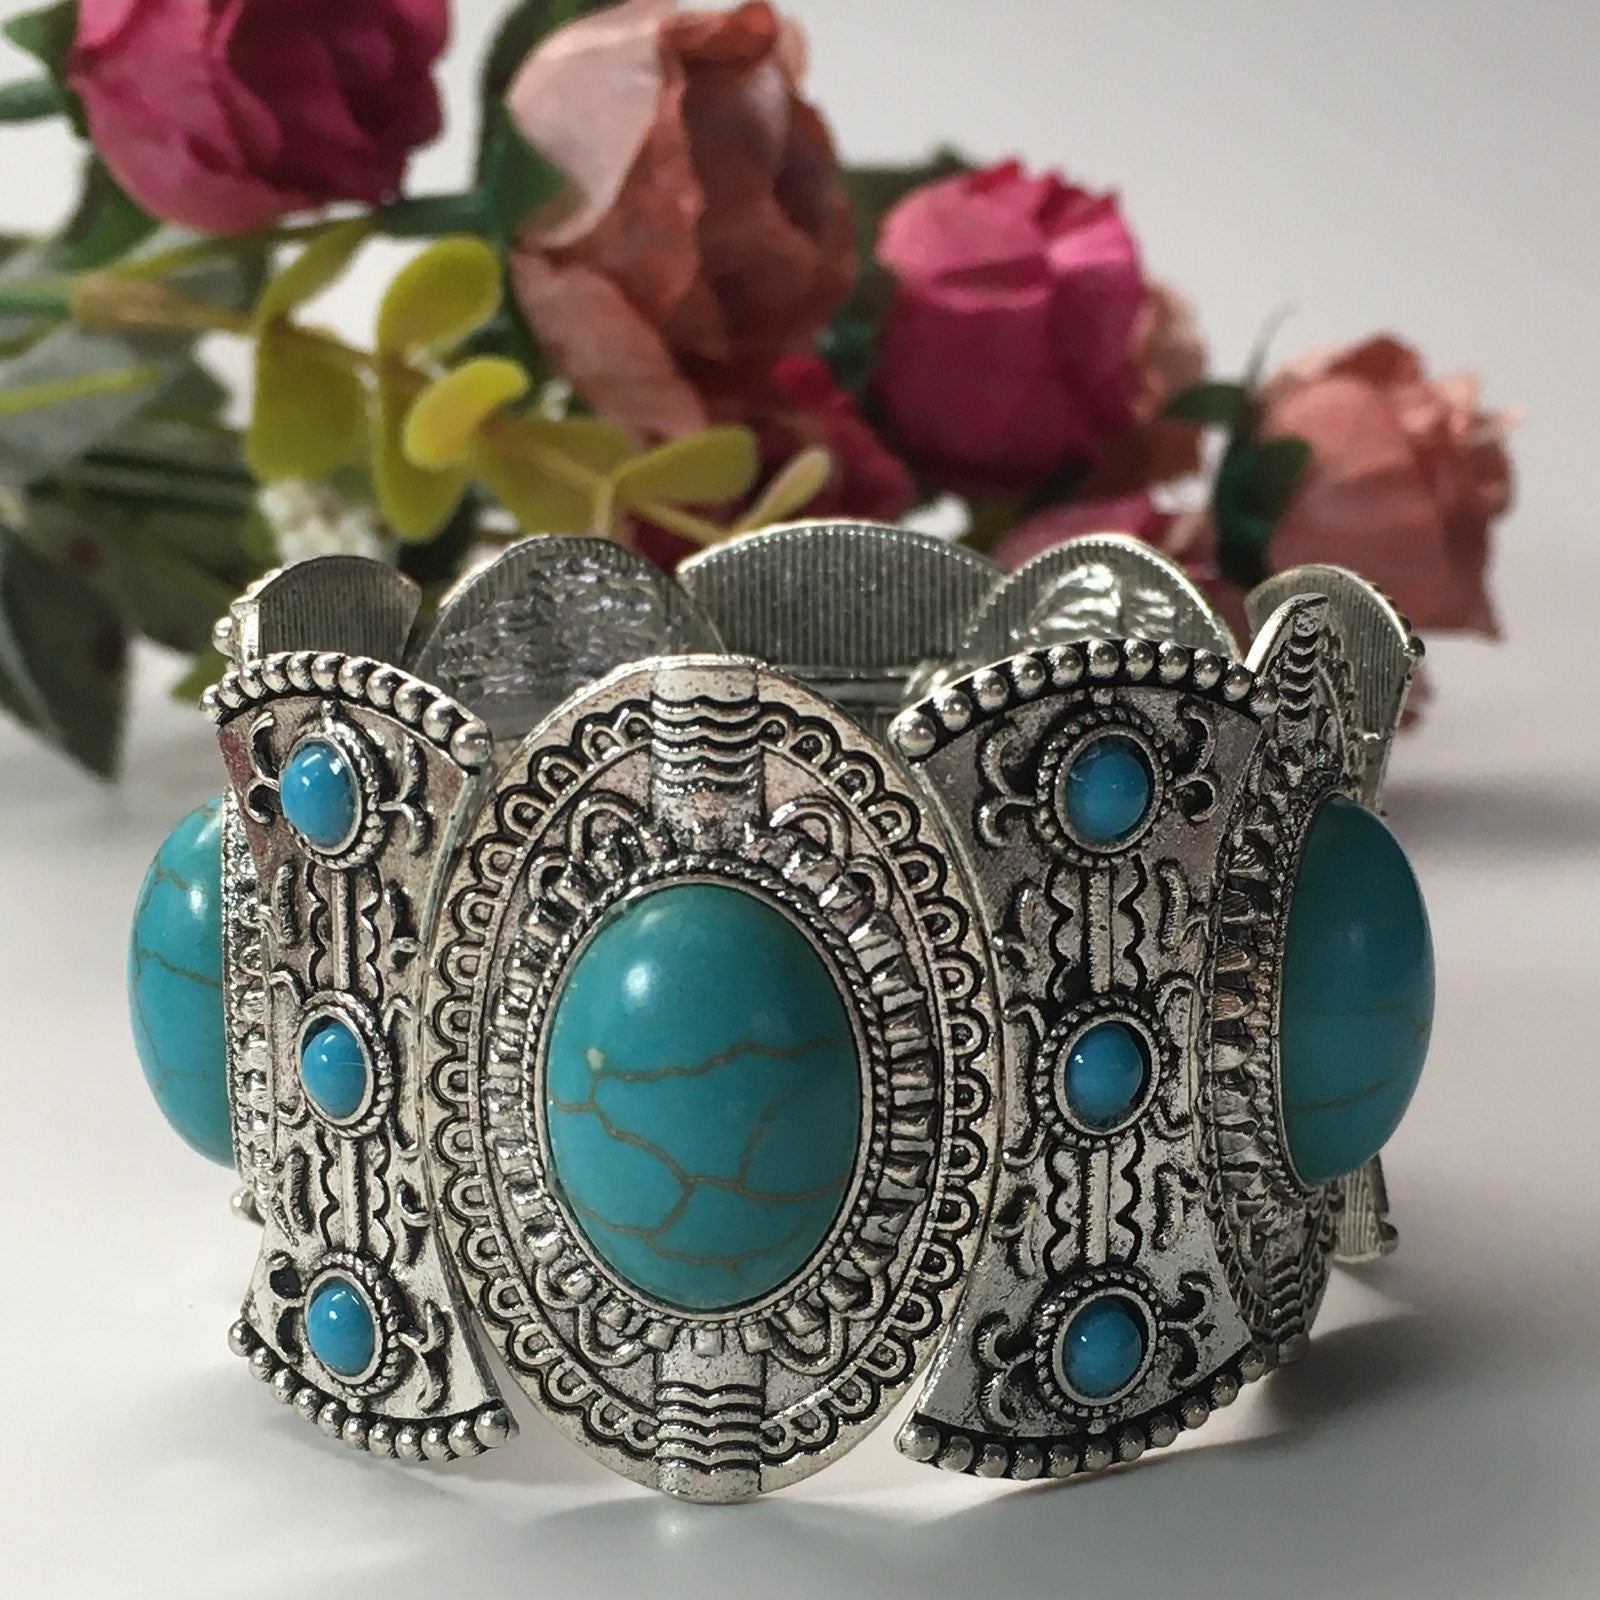 TURQUOISE BANGLE BRACELET - new